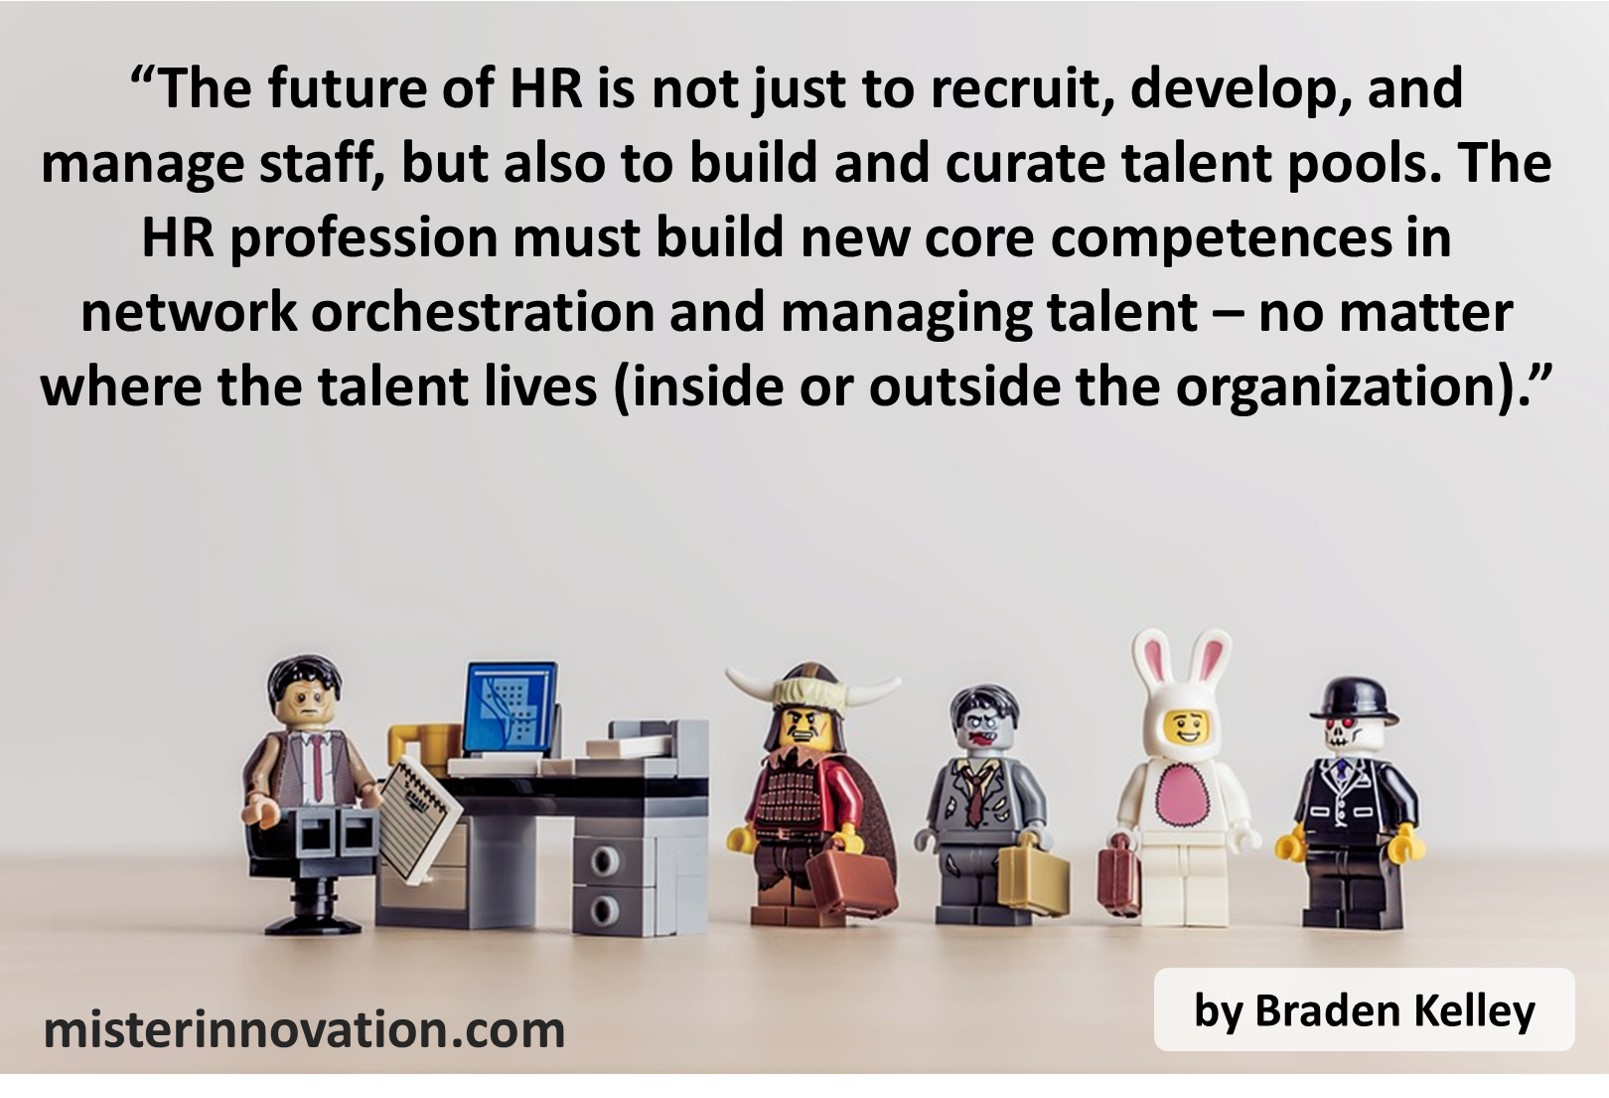 Braden Kelley quote on Human Resources and External Talent Pools